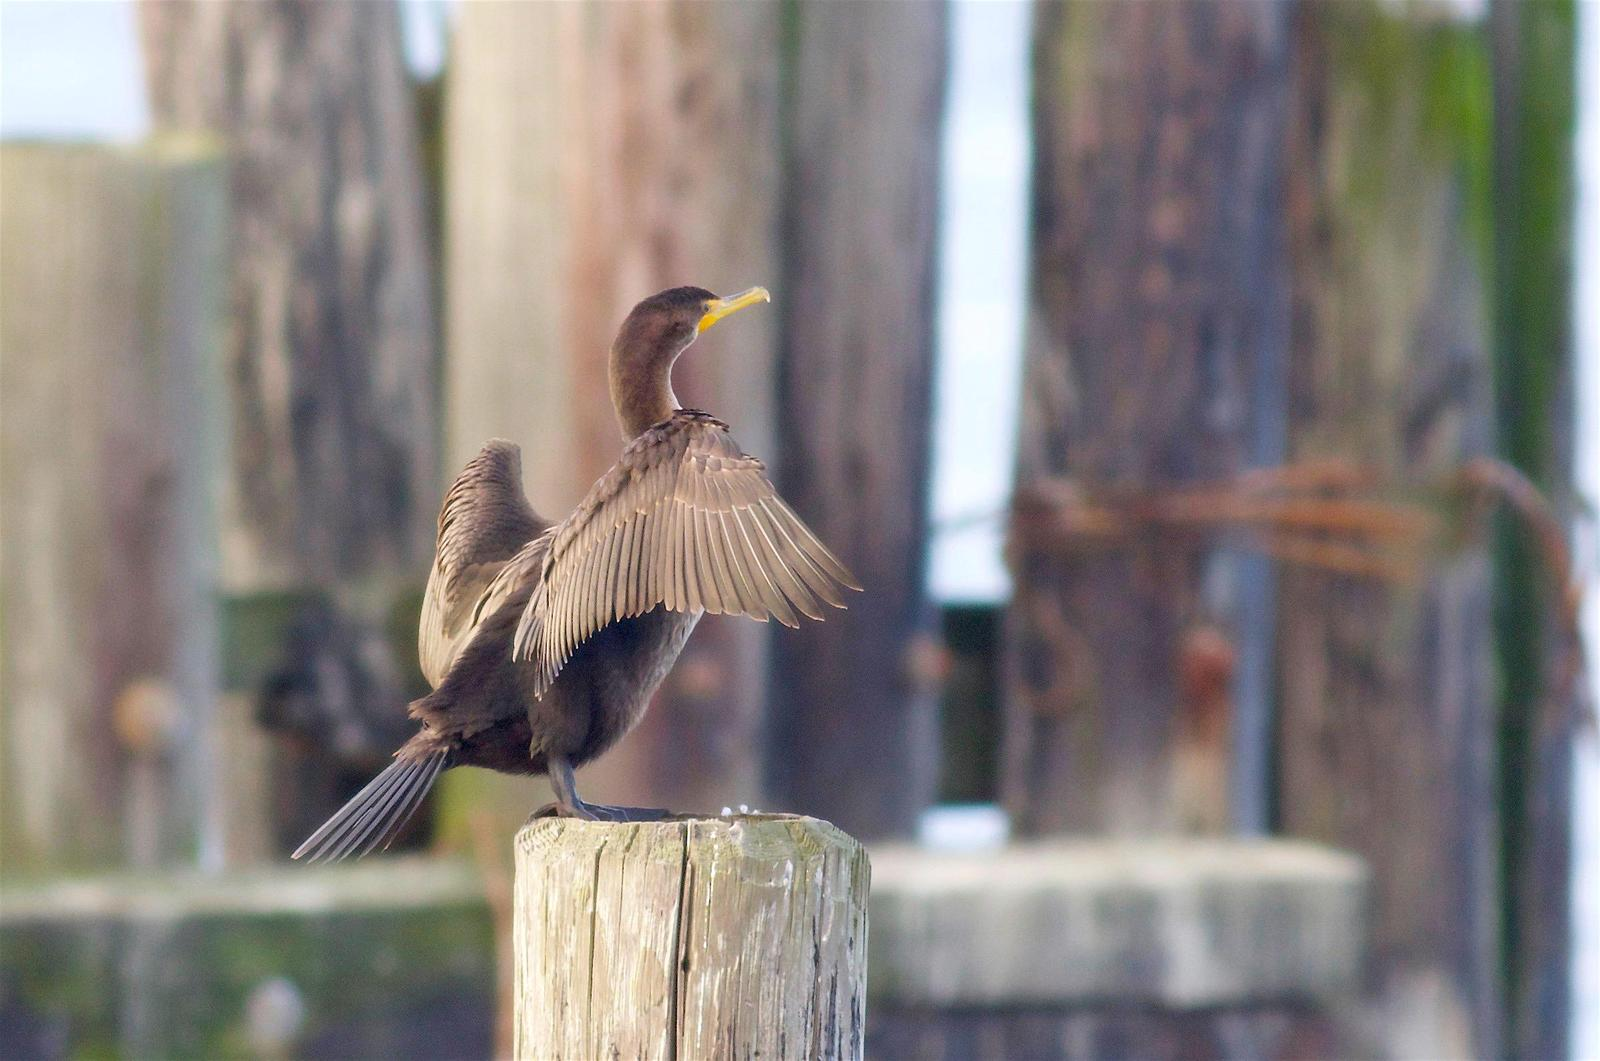 Double-crested Cormorant Photo by Kathryn Keith